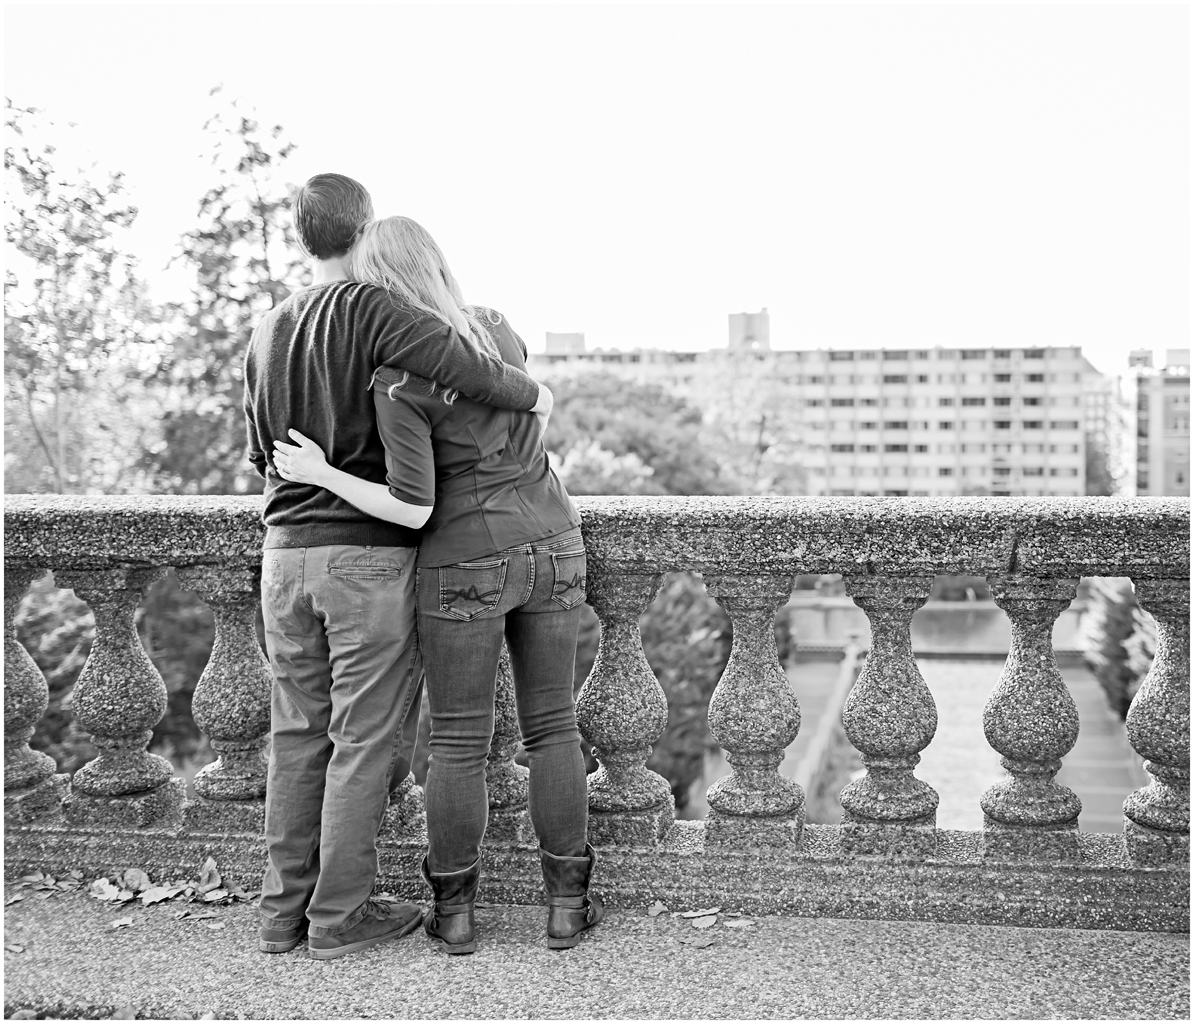 h-street-meridian-hill-washington-dc-engagement-photography-liz-stewart-photo-00006